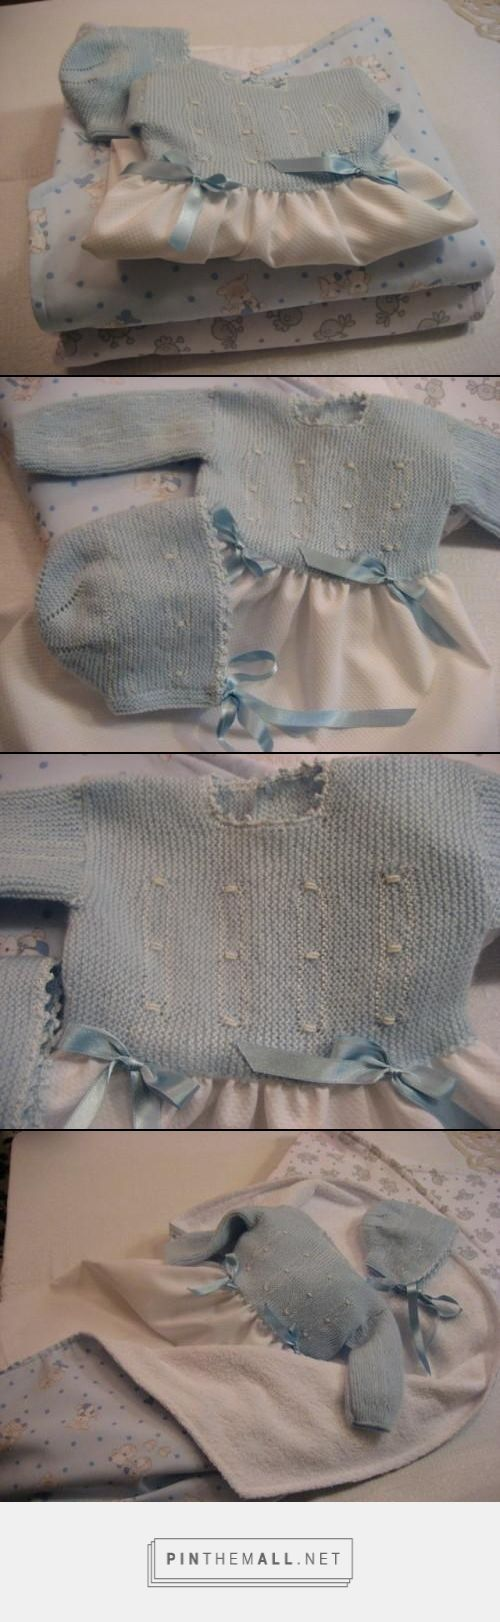 """Beautiful basic baby sweater in powder blue, fastened in back. Garter stitch worked sideways with white bullion stitch embroidered details; finished with crochet picots in powder blue perle cotton (See https://www.pinterest.com/pin/460563499368794620/). Here sewn to a gathered piqué fabric skirt to form a long gown (""""faldón""""). Bonnet matched to the jacket."""